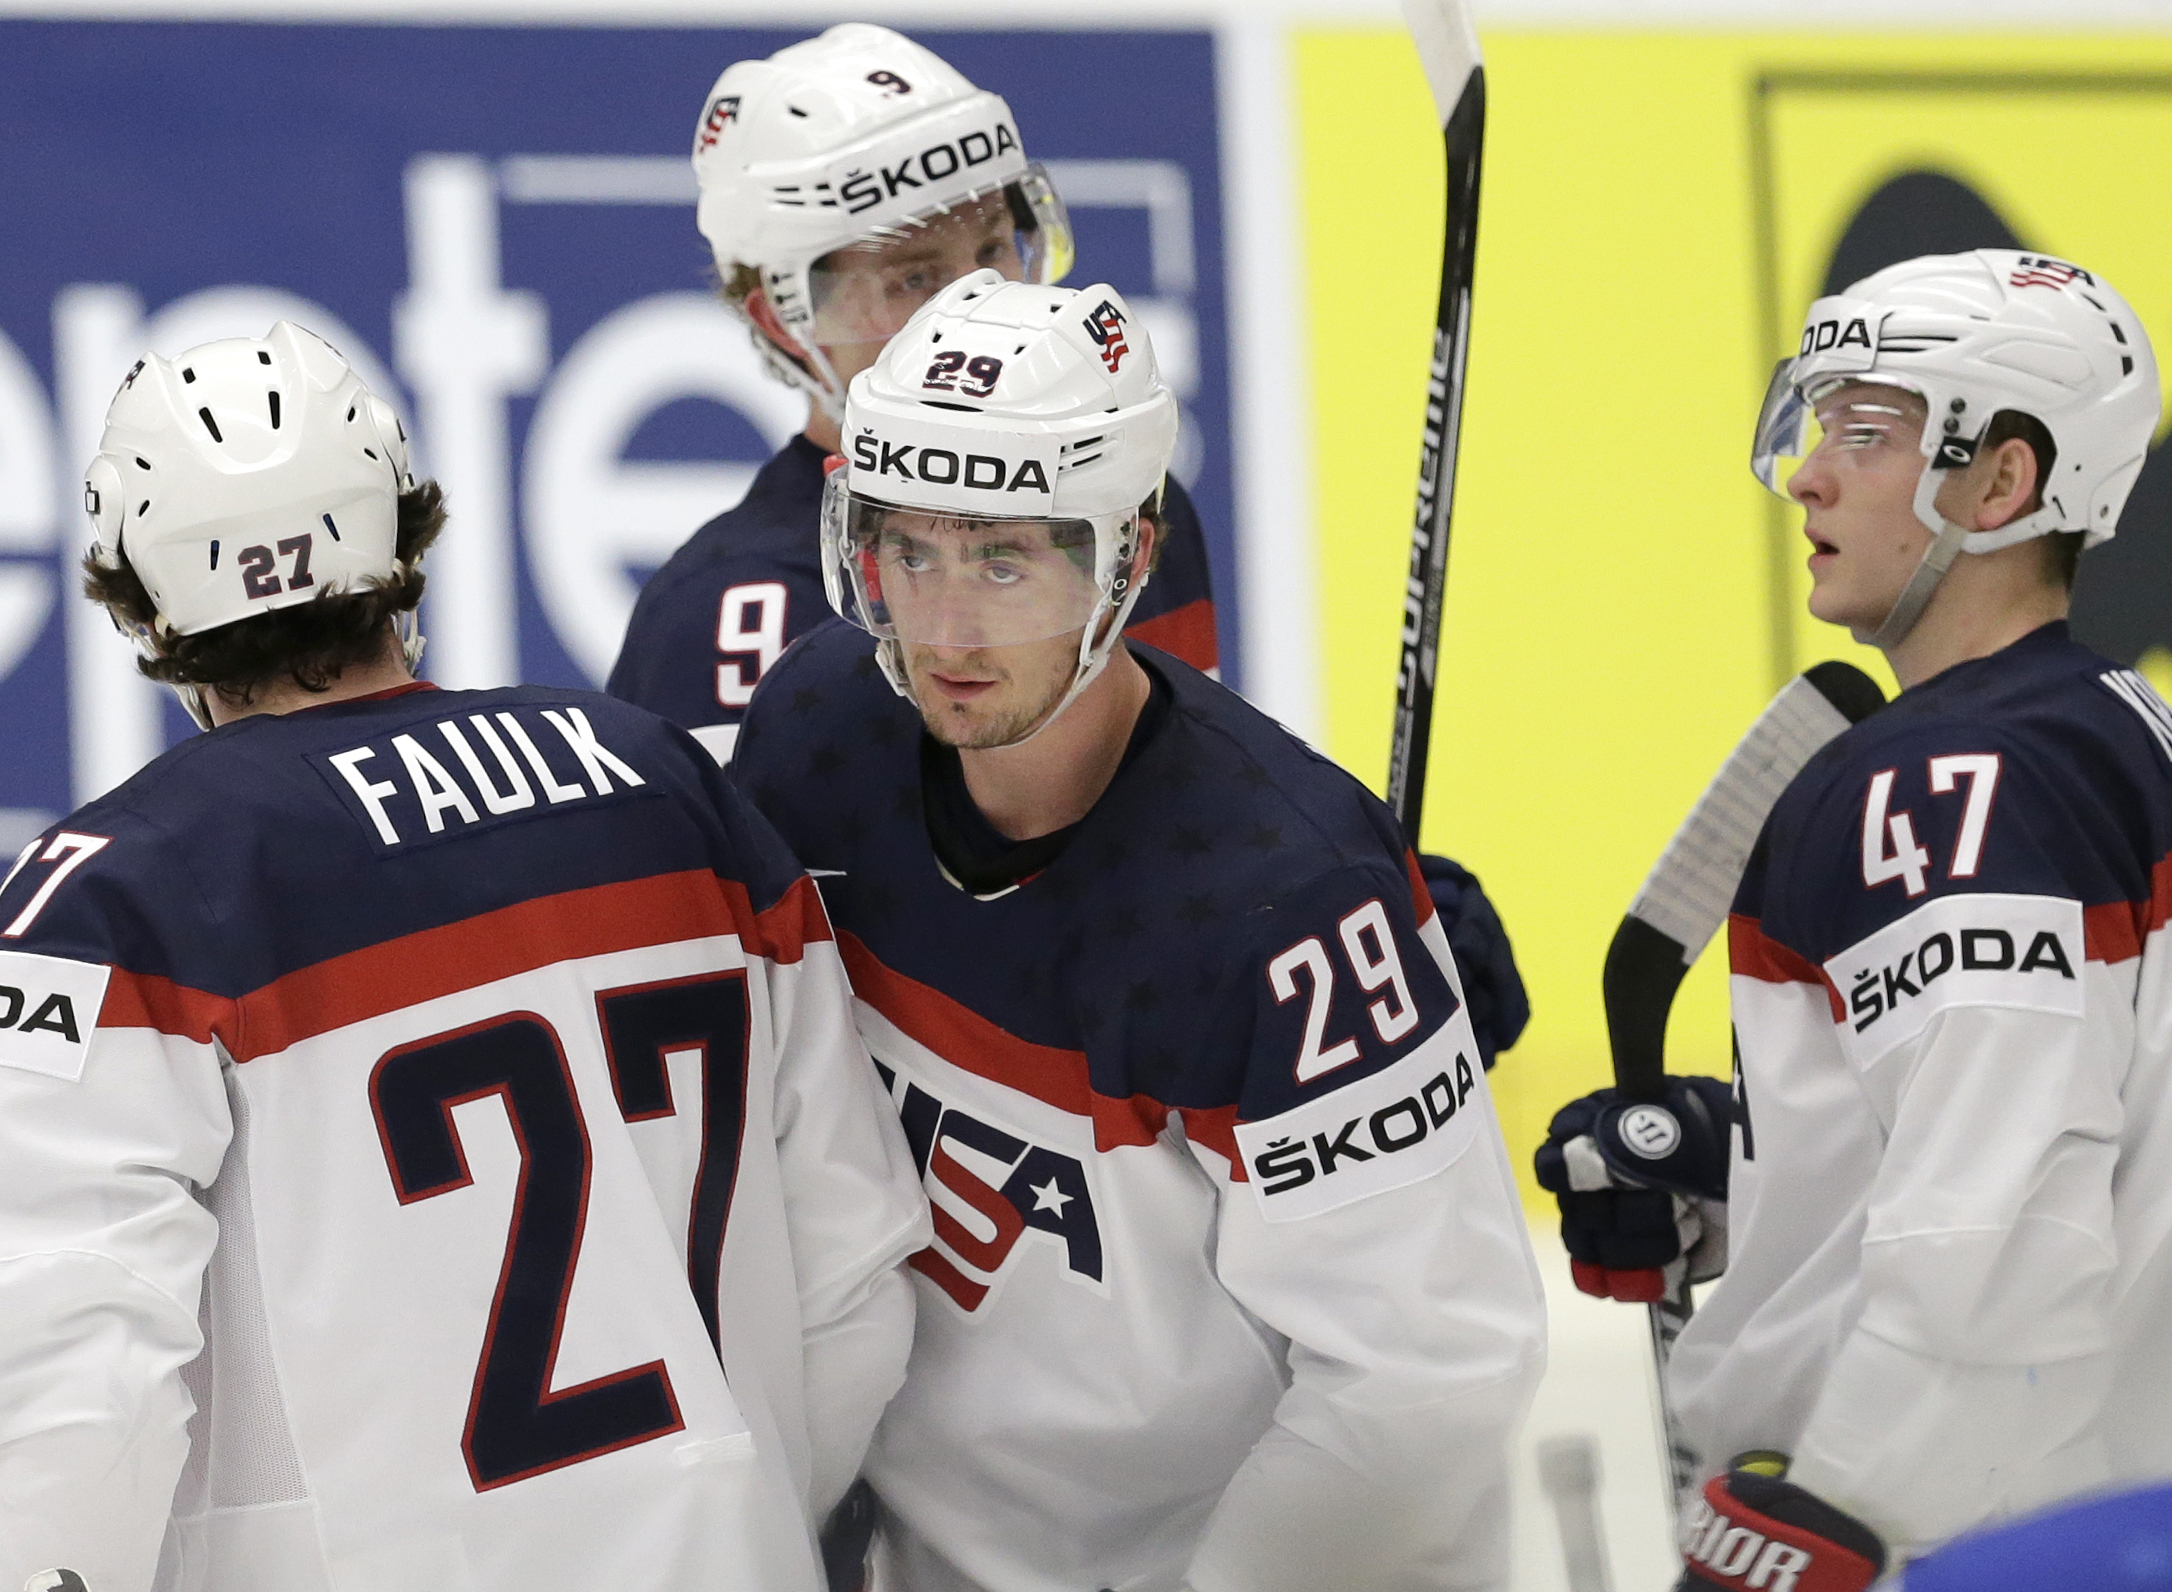 Brock Nelson of USA, second from right, celebrates with team mates after scoring against Slovenia during a Hockey World Championships Group B match in Ostrava, Czech Republic, Sunday, May 10, 2015. (AP Photo/Sergei Grits)